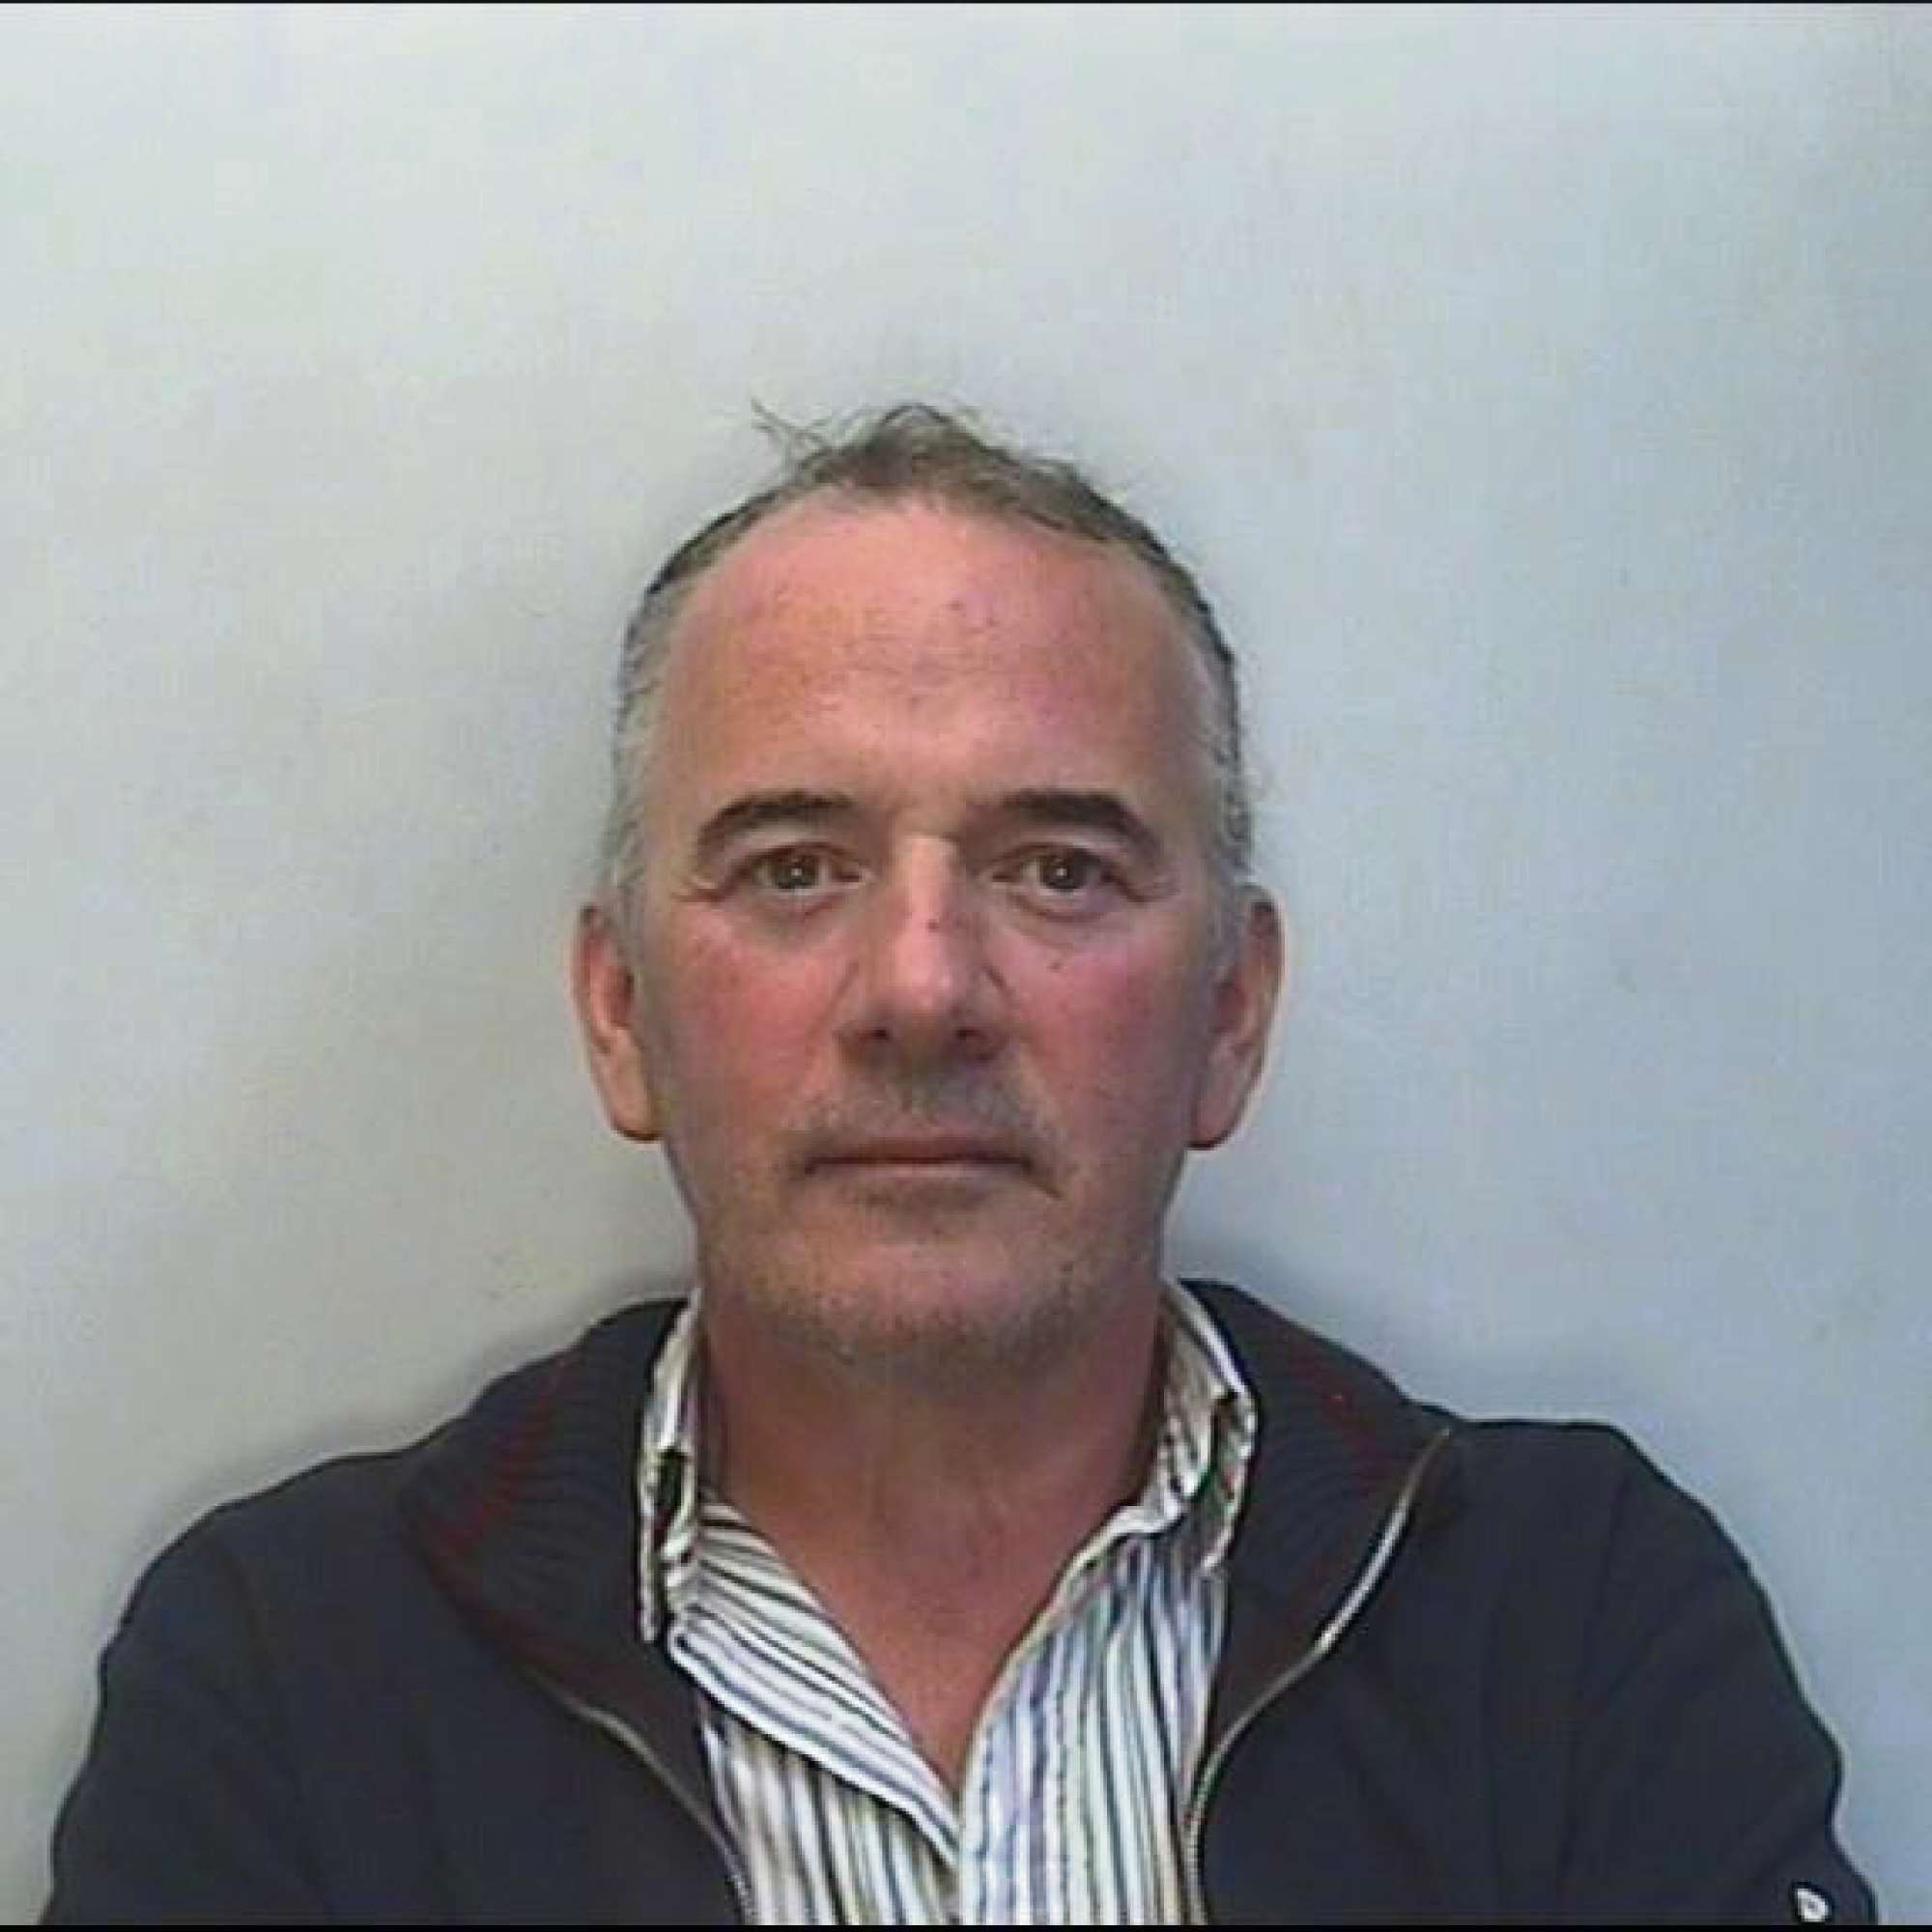 £1.6m property fraudsters jailed